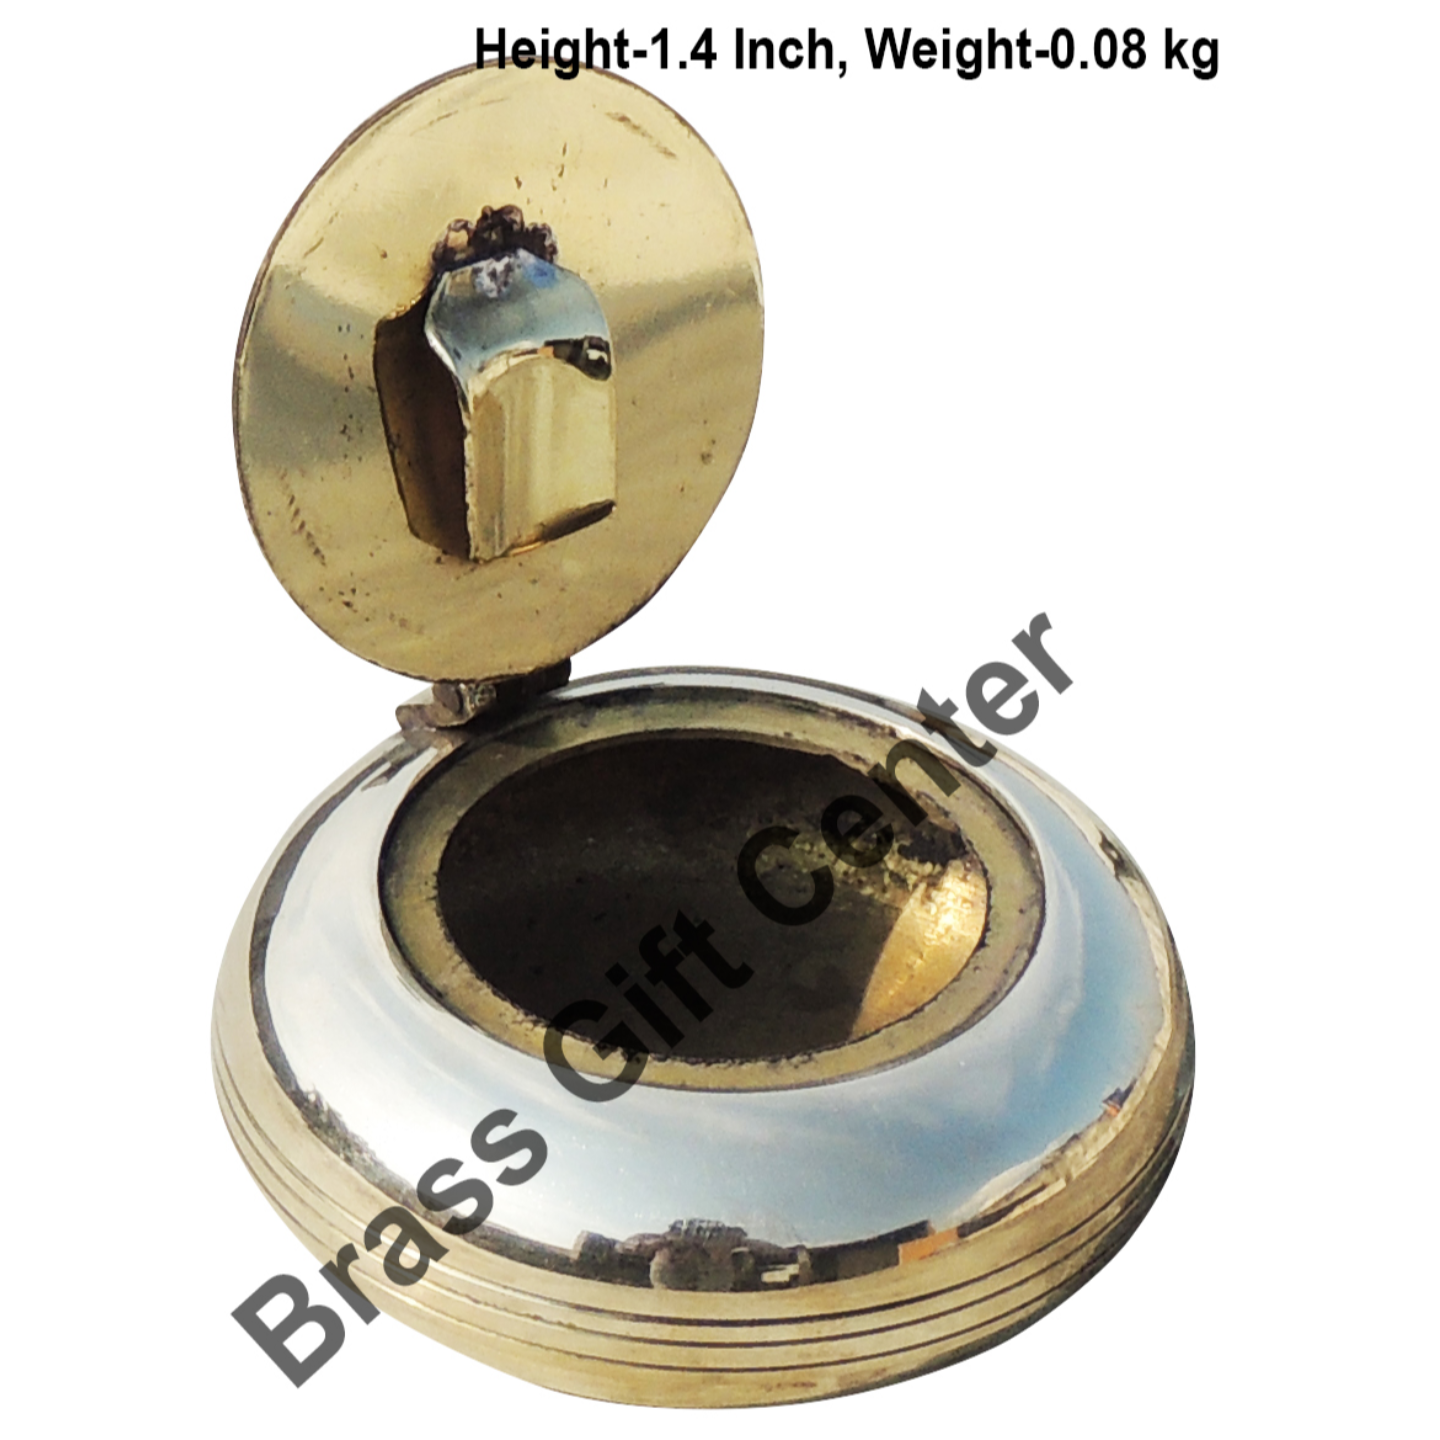 Brass Ash Tray With Cap - 2.62.61.4 inch  Z156 D